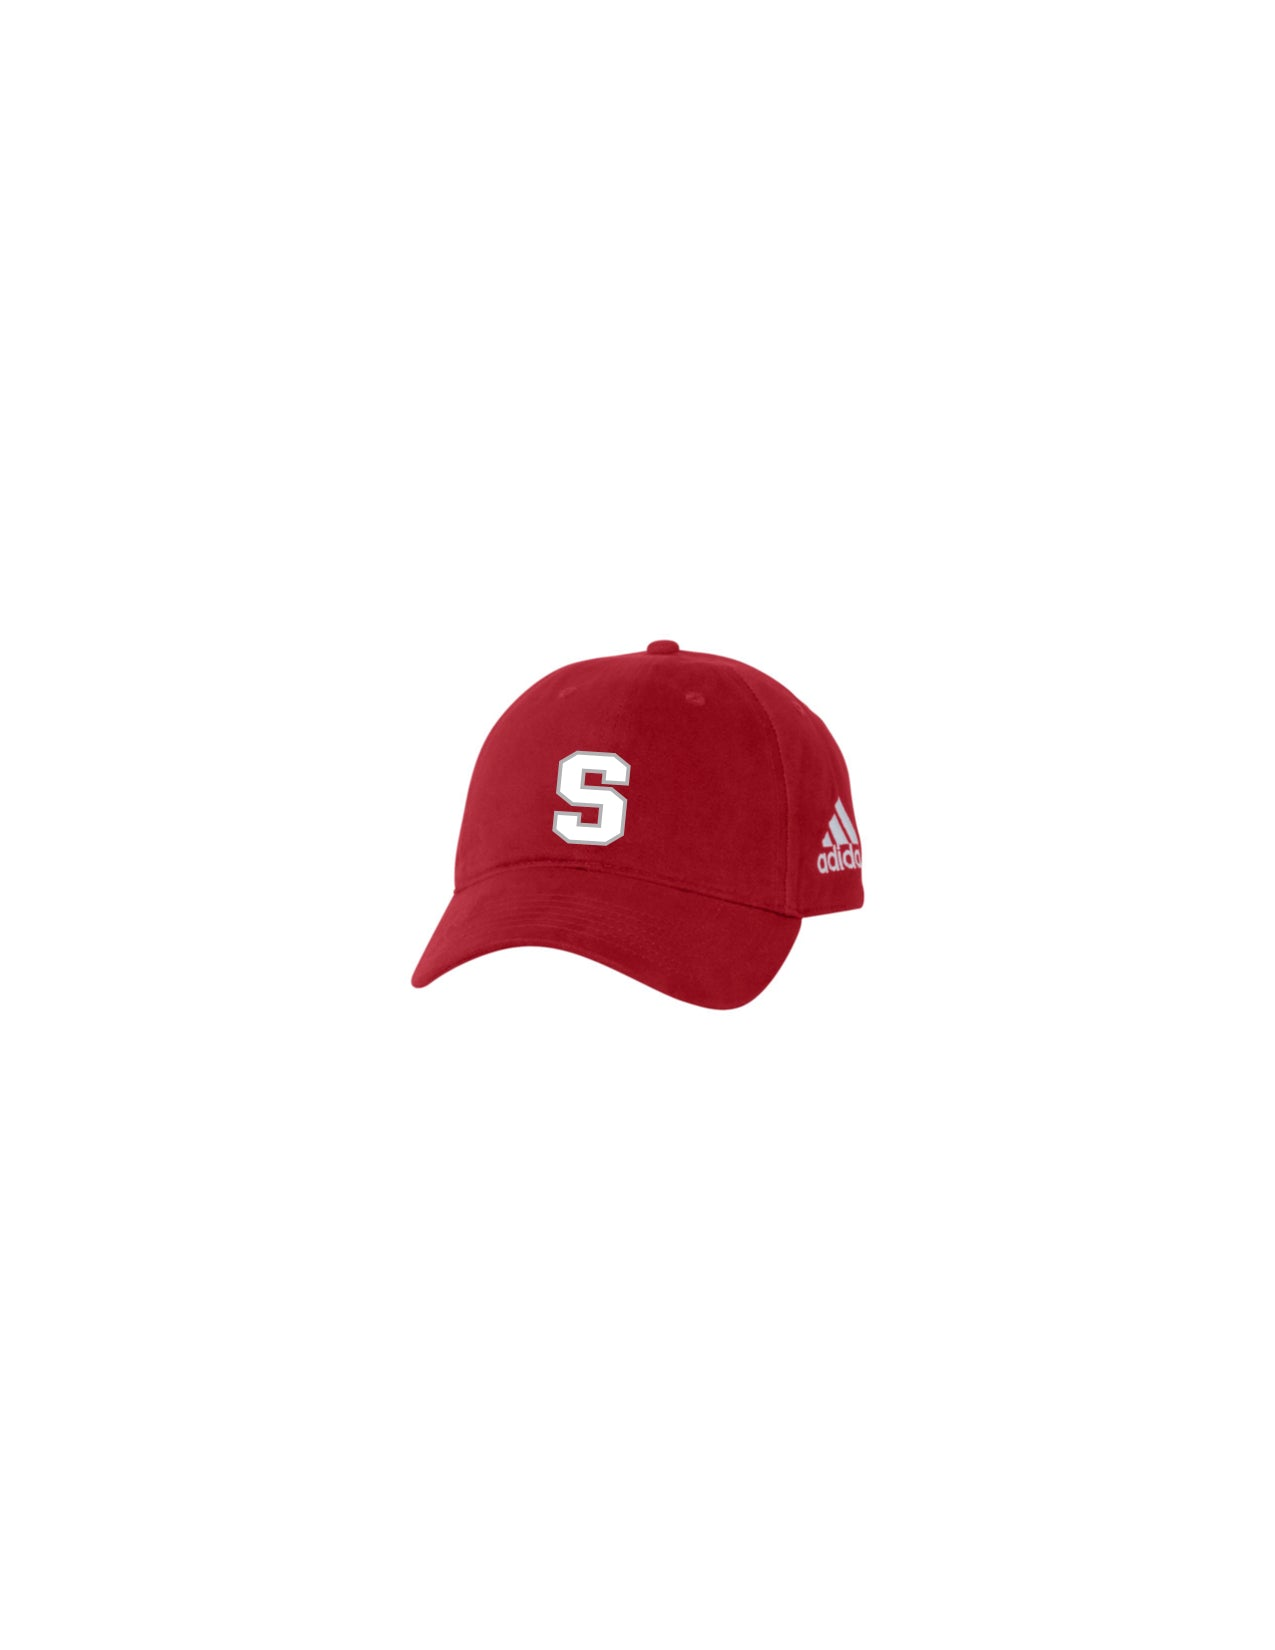 Springfield Softball Adidas Hat